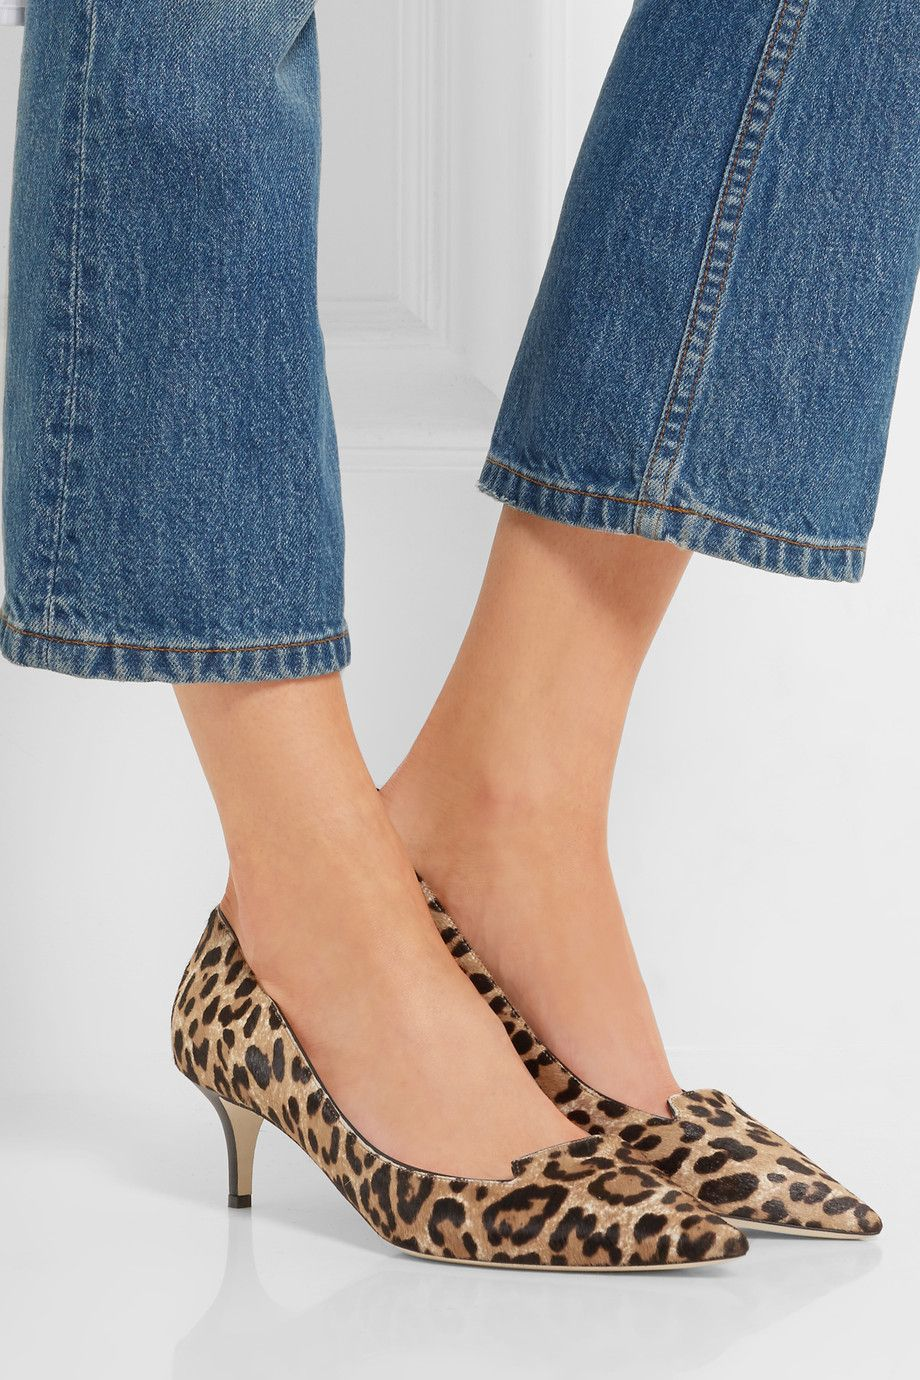 4424933a861 Jimmy Choo Allure leopard-print calf hair pumps $895 Heel measures  approximately 50mm/ 2 inches Leopard-print calf hair Slip on Made in Italy